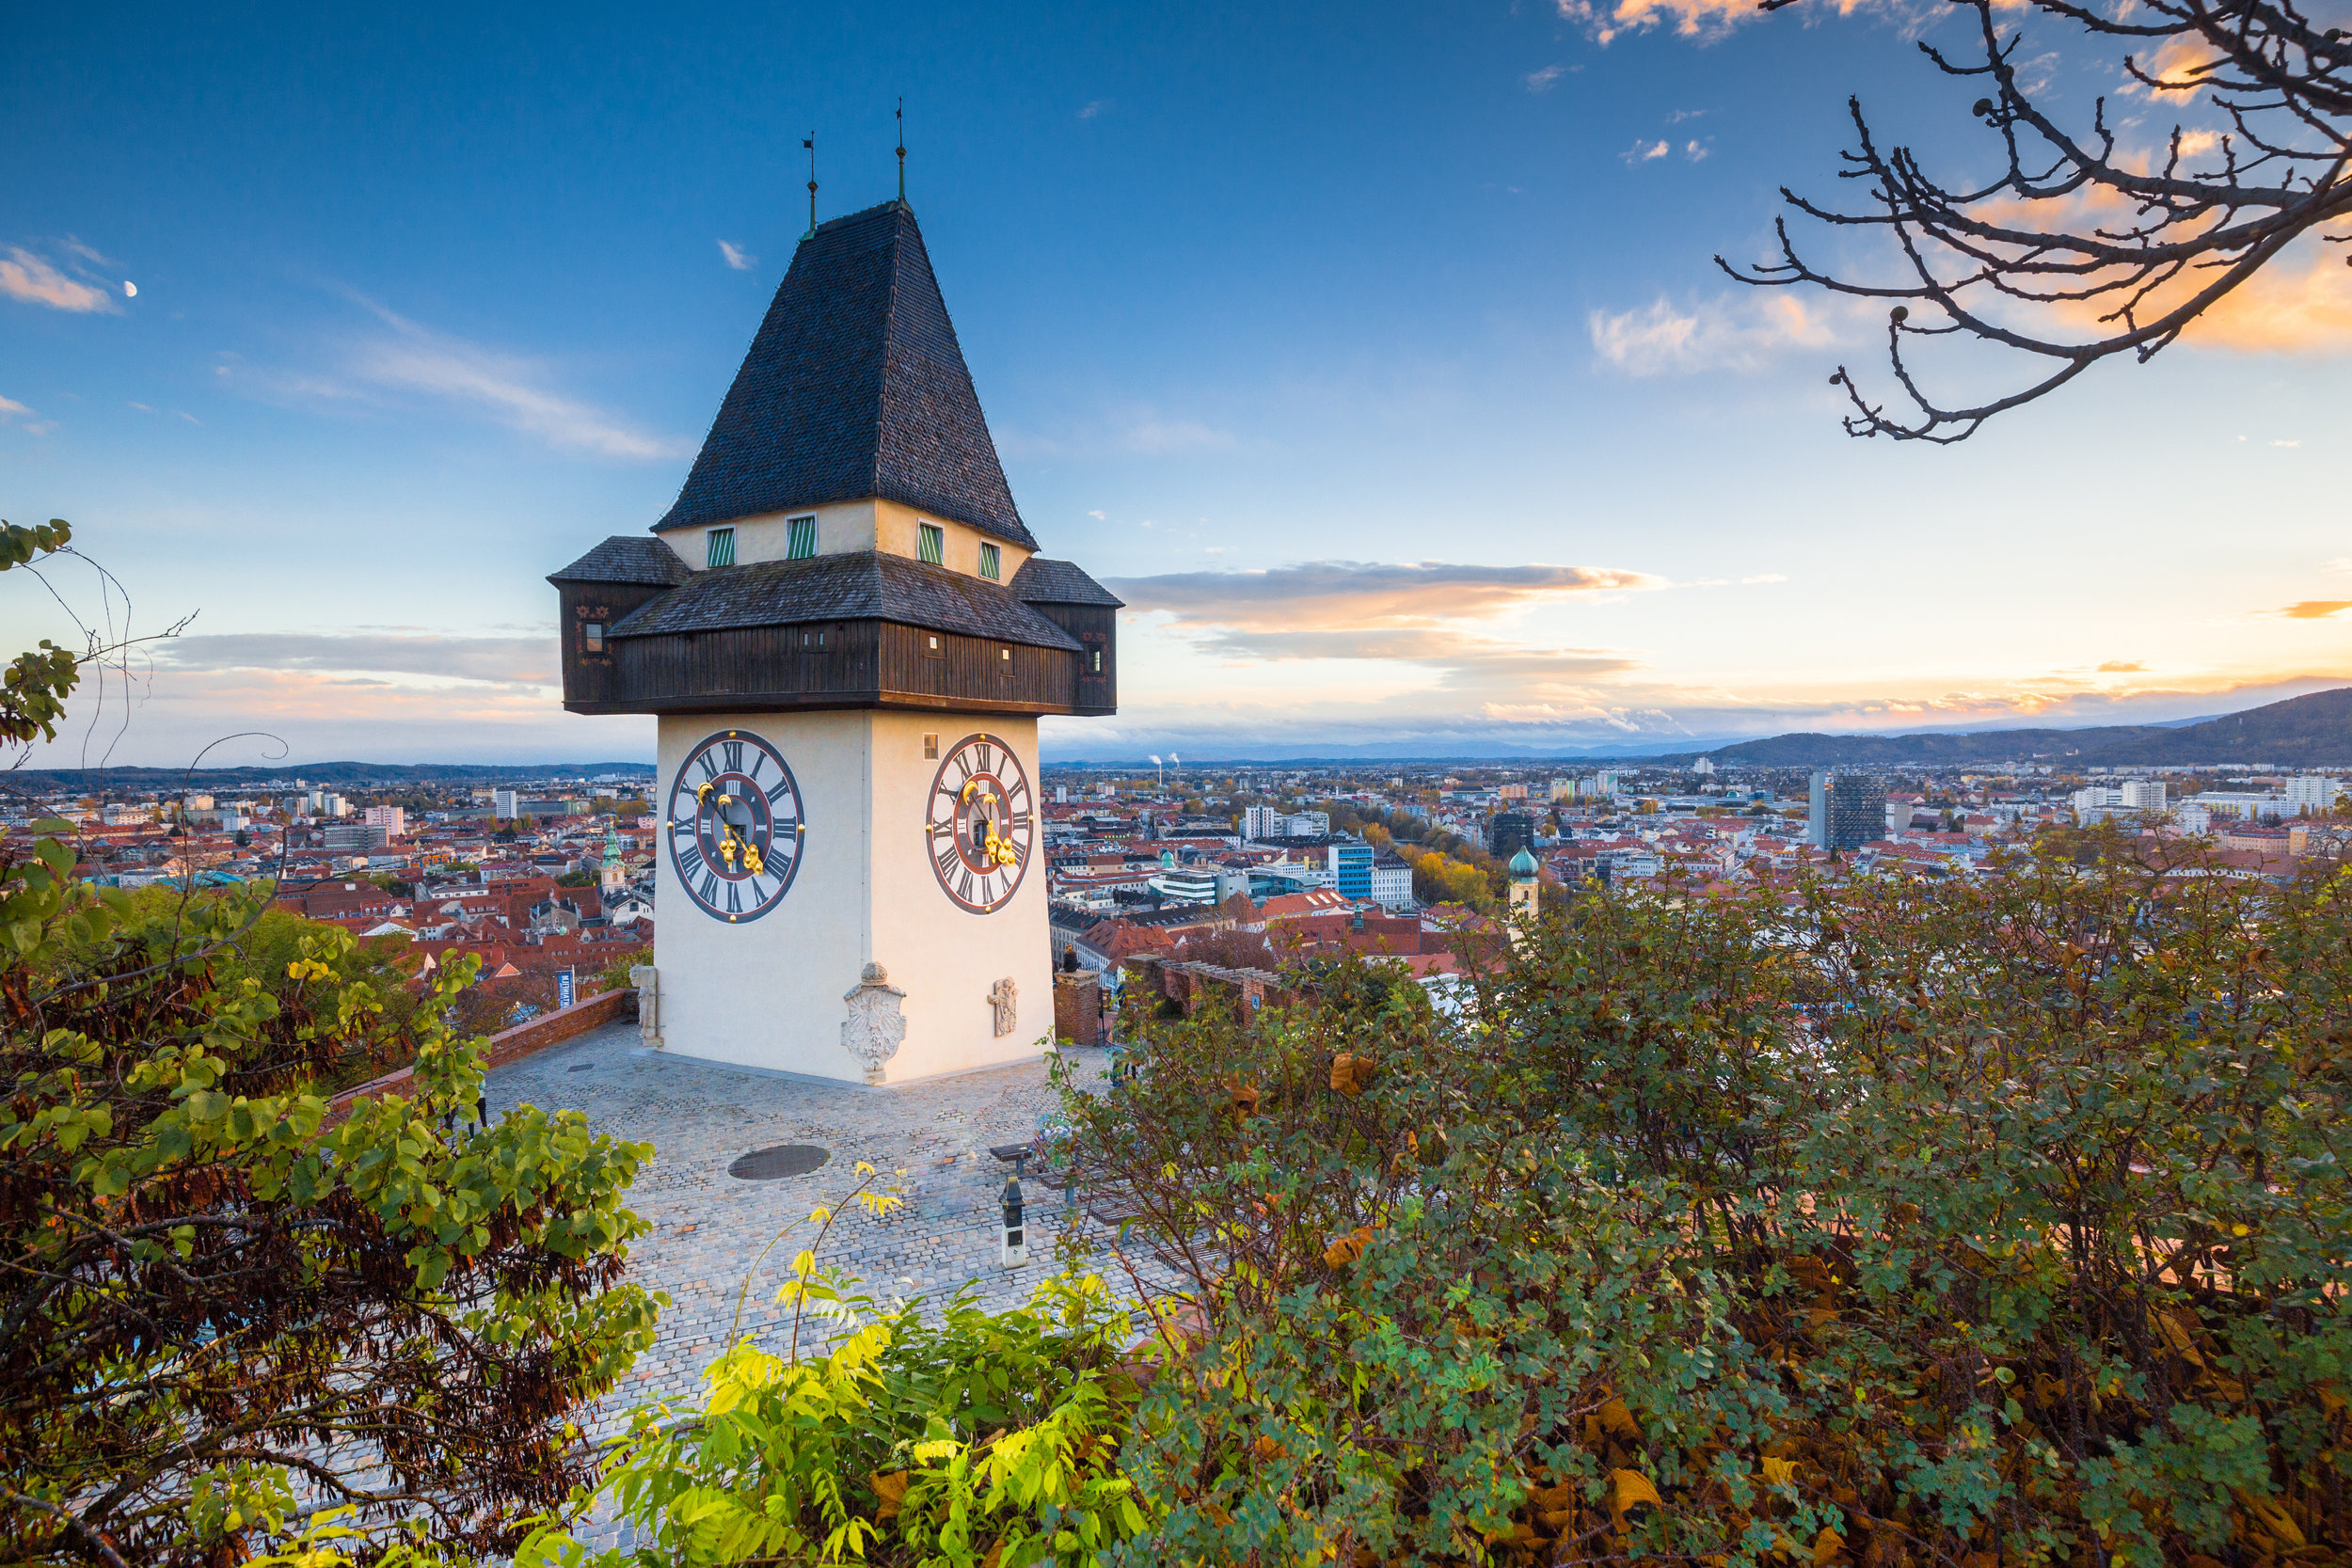 Graz clock tower at sunset, Graz, Styria, Austria